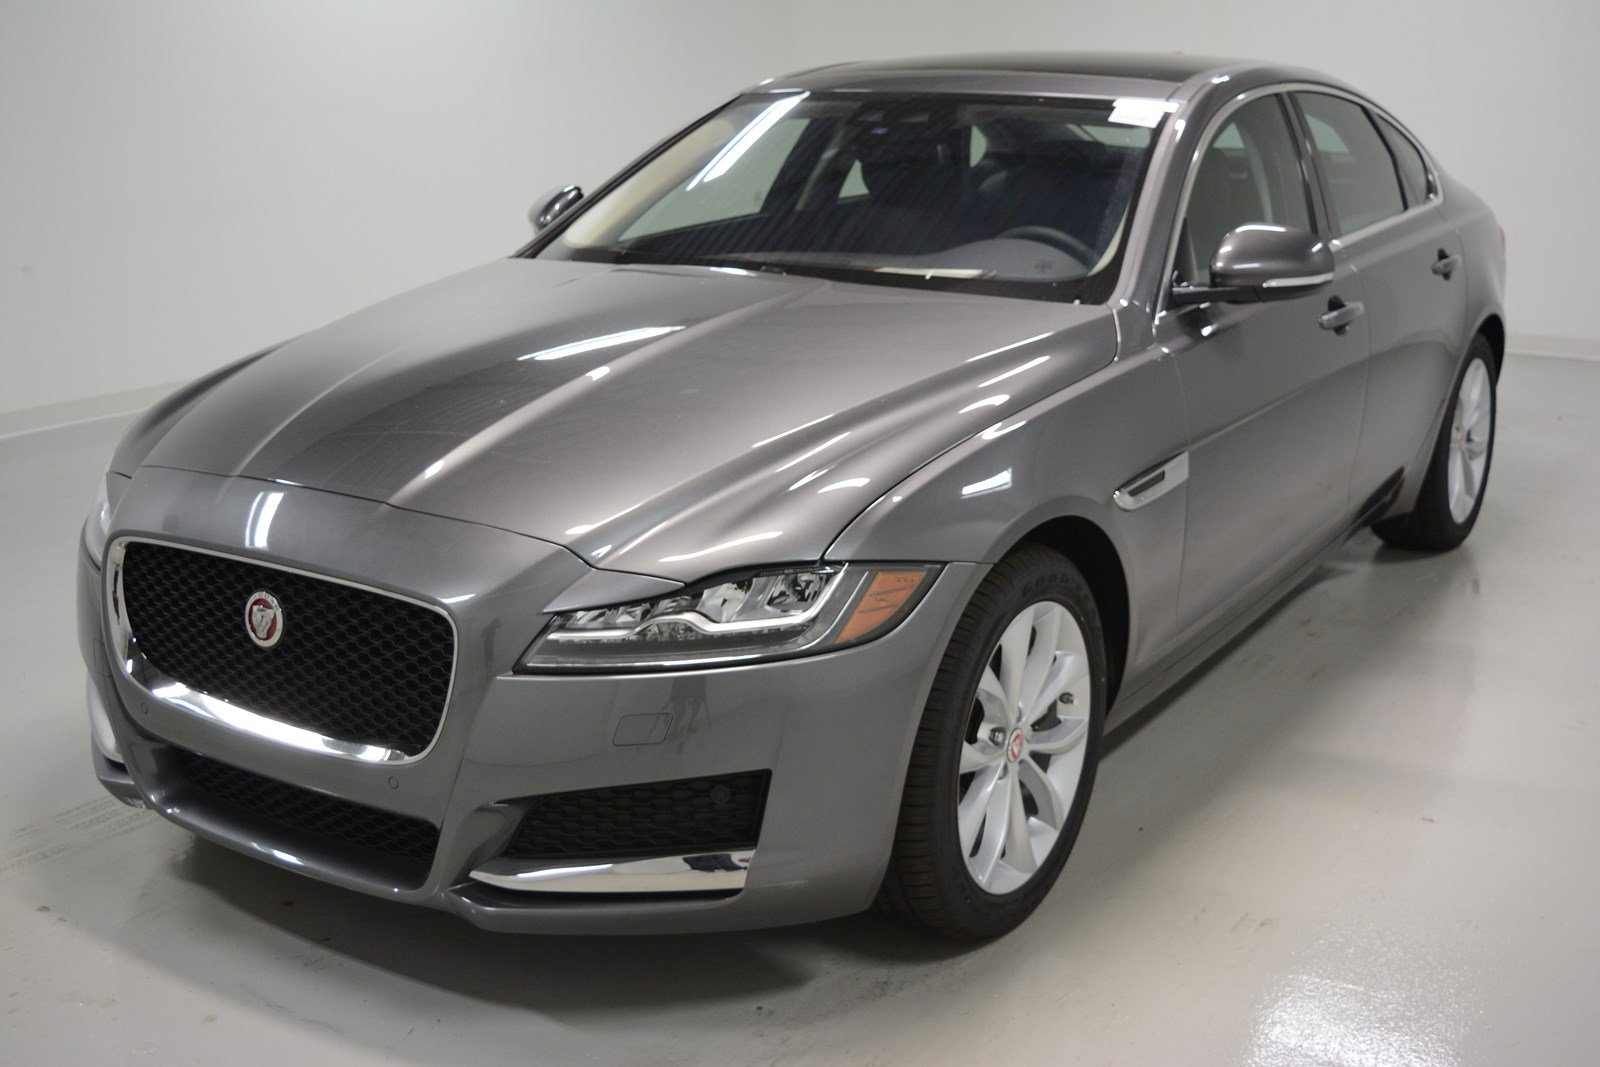 new 2018 jaguar xf 25t premium 4dr car in elmhurst j1637 jaguar elmhurst. Black Bedroom Furniture Sets. Home Design Ideas